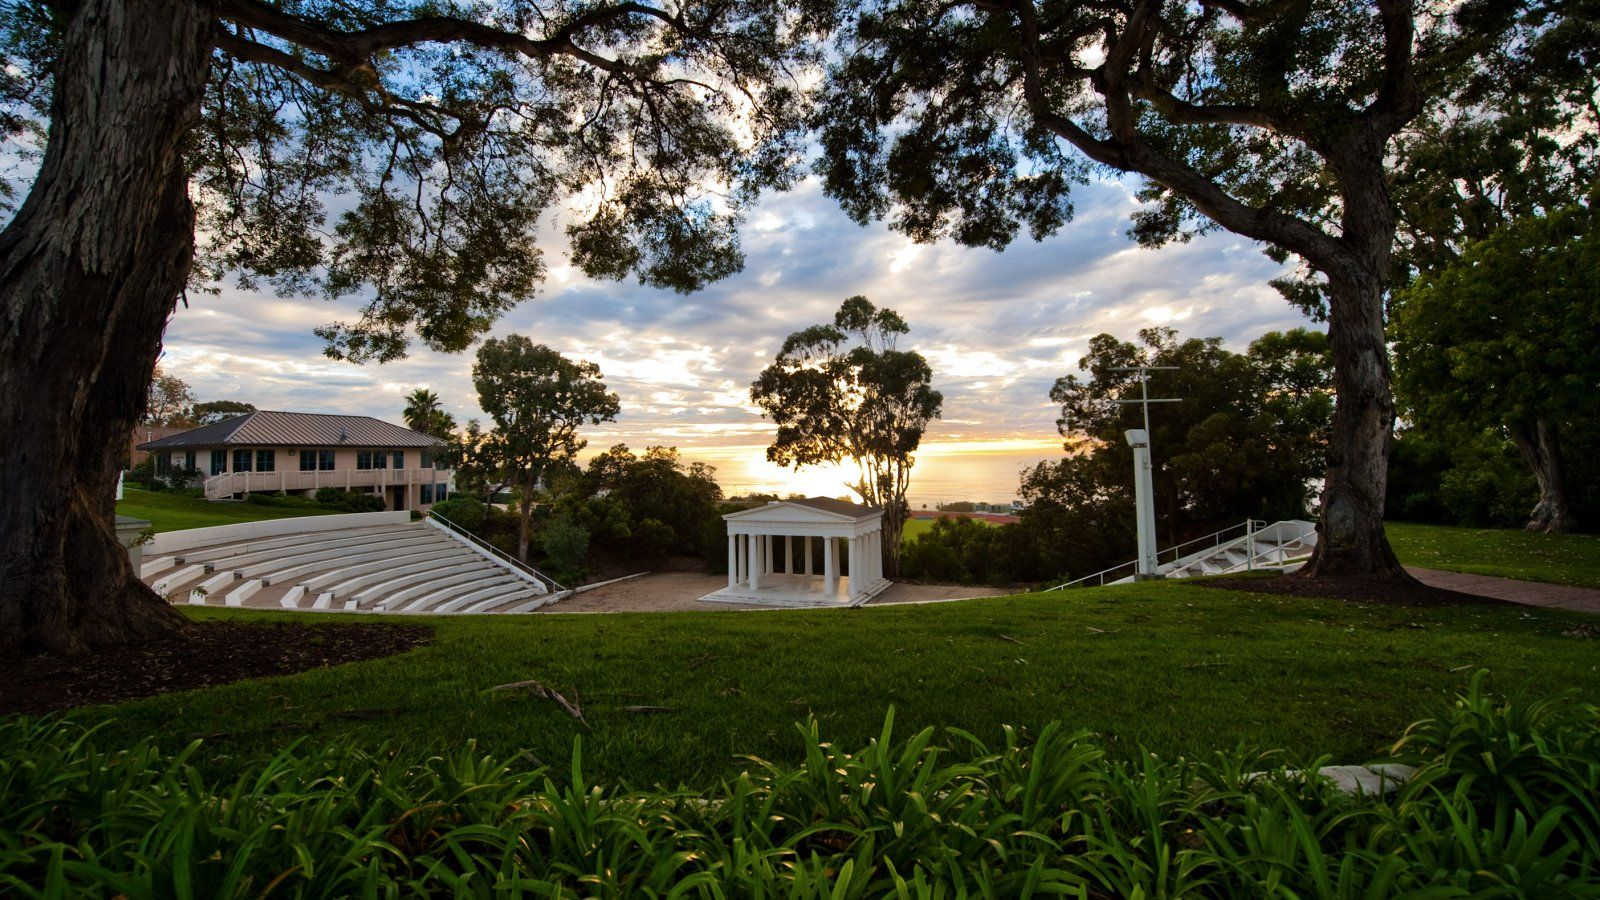 PLNU's iconic Greek Amphitheatre at sunset.